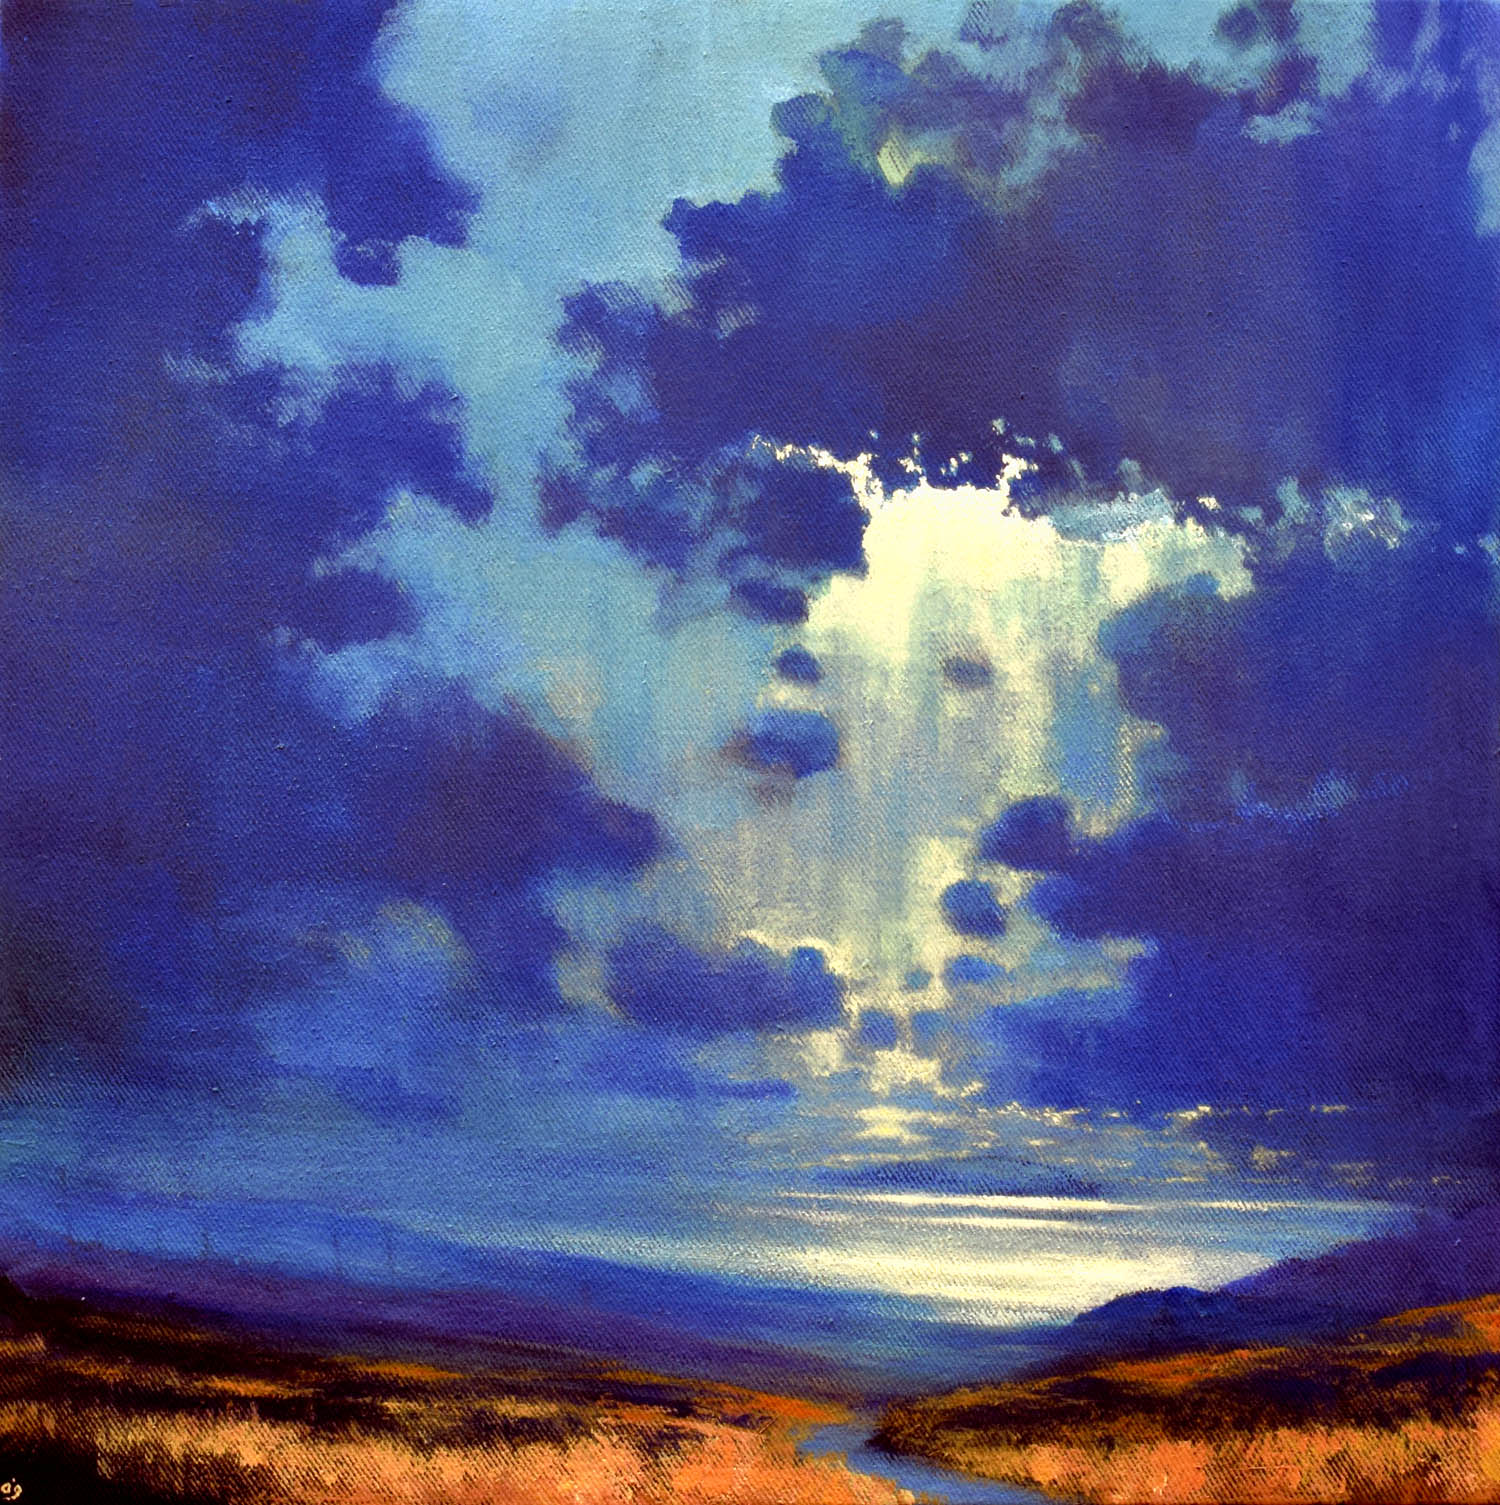 Take Me to the Island XIV, John O'Grady | A dream-like moonlit nocturne painting in the West of Ireland by the ocean